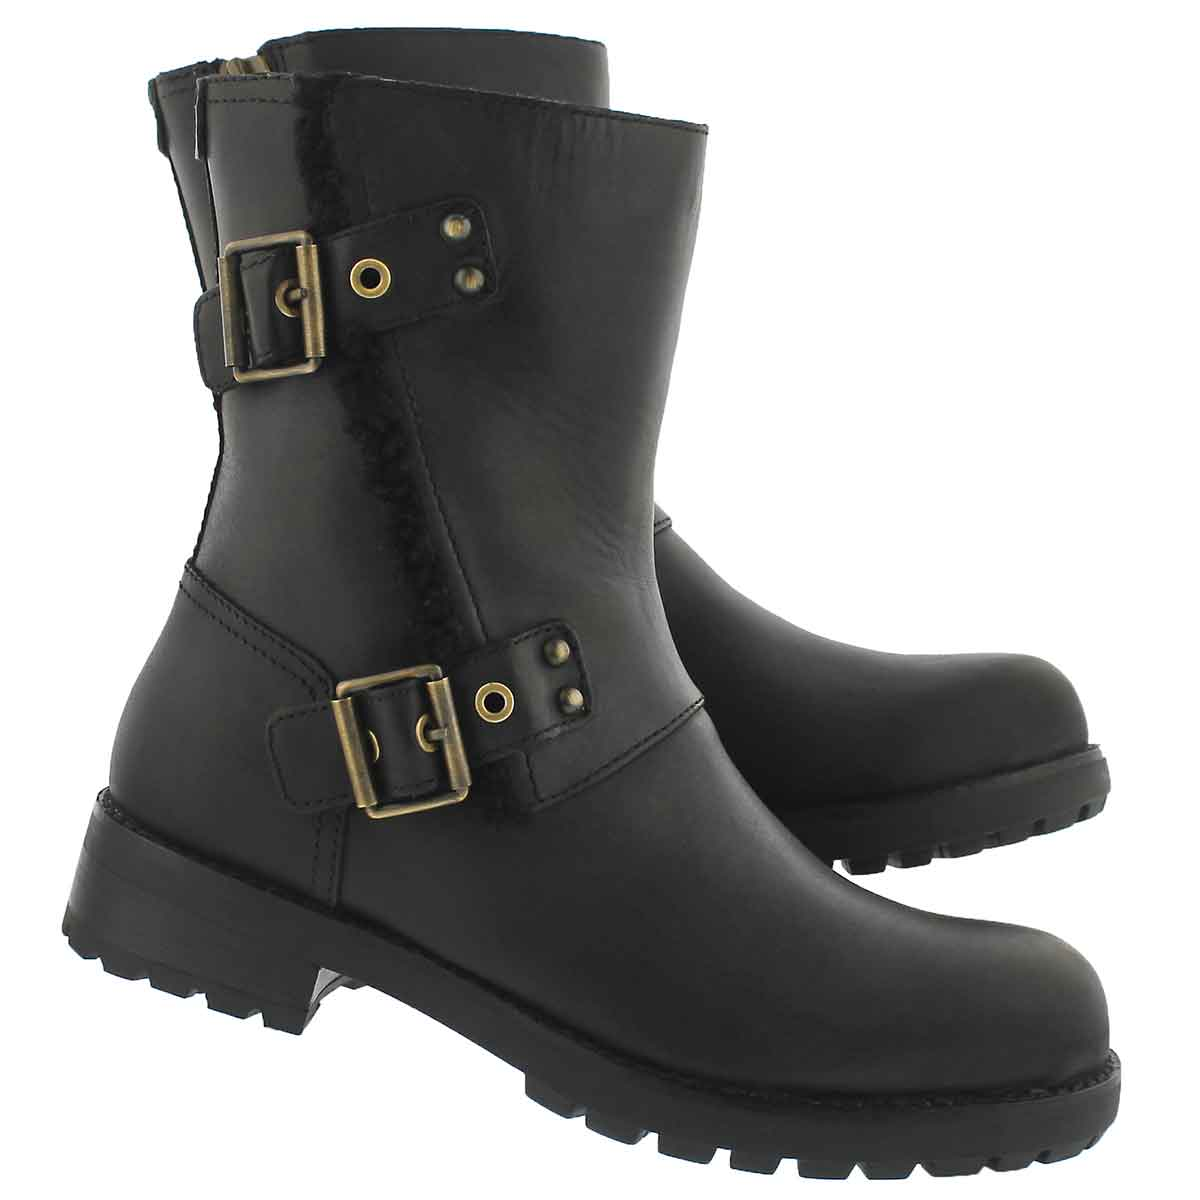 Lds Niels black zip up ankle boot